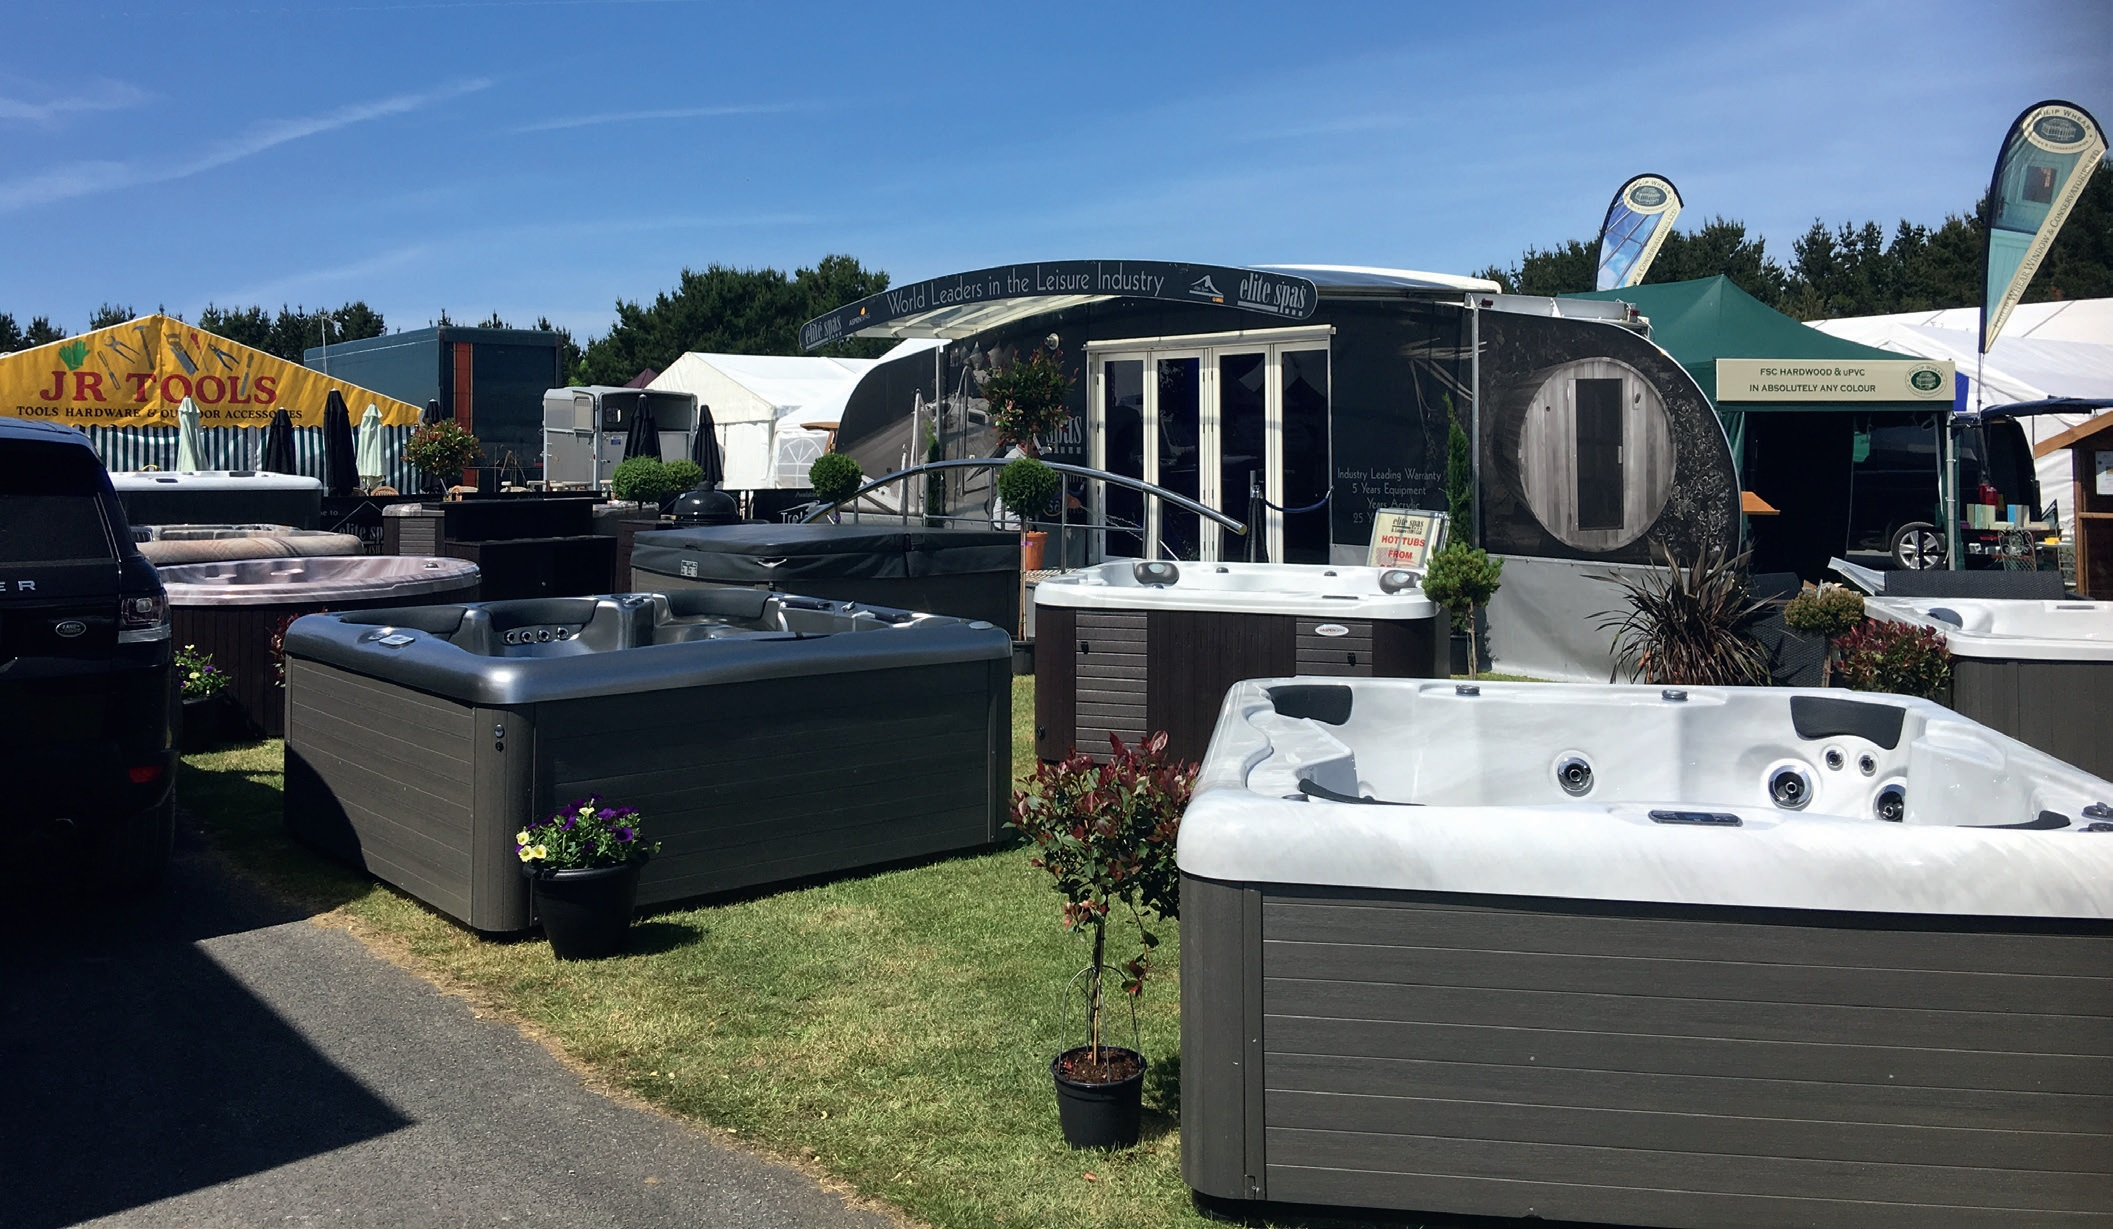 The warm weather heightened interest in the outdoor living lifestyle and its associated products. Pic: Elite Spas